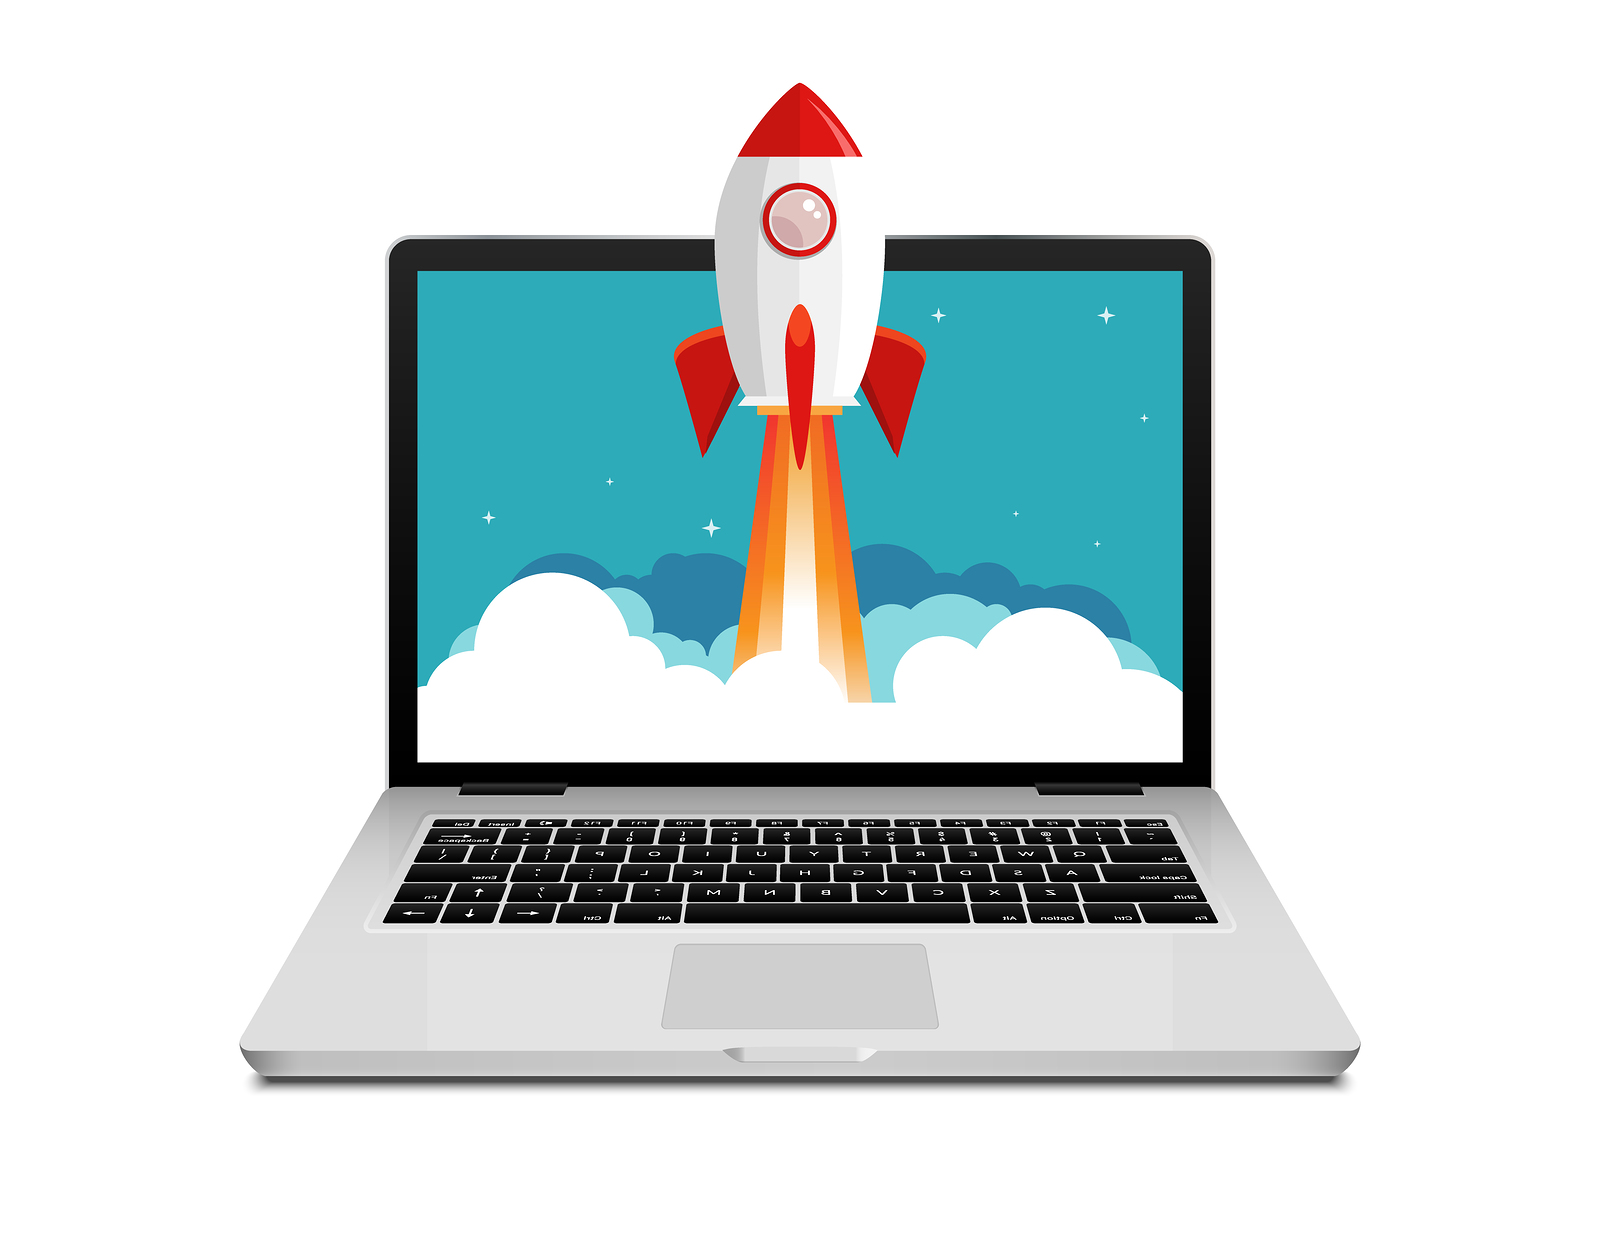 5 Reasons to Launch Your Website Before You Think You're Ready